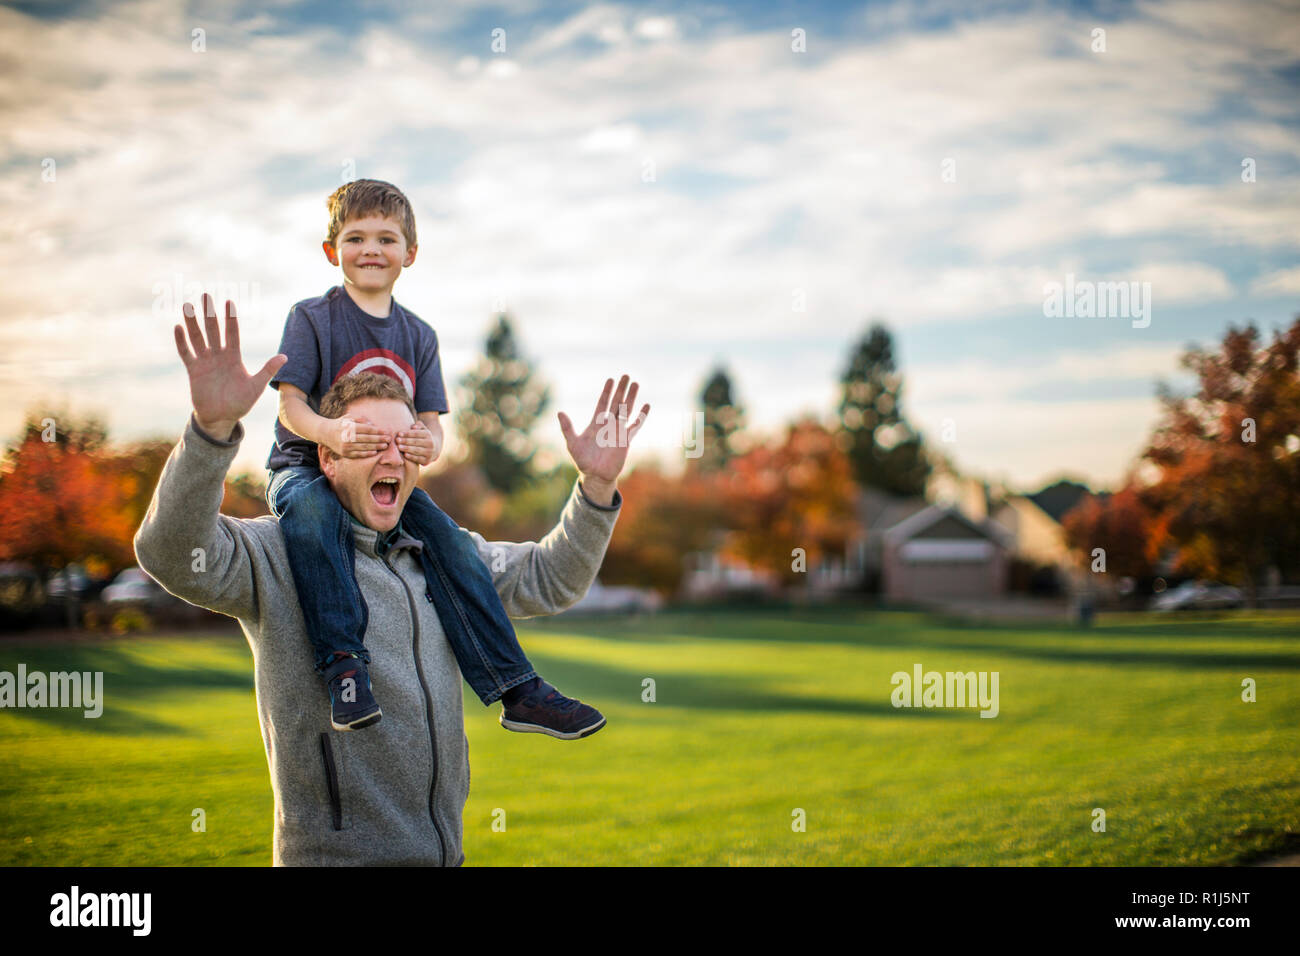 Boy having piggyback ride on his father's shoulders. - Stock Image